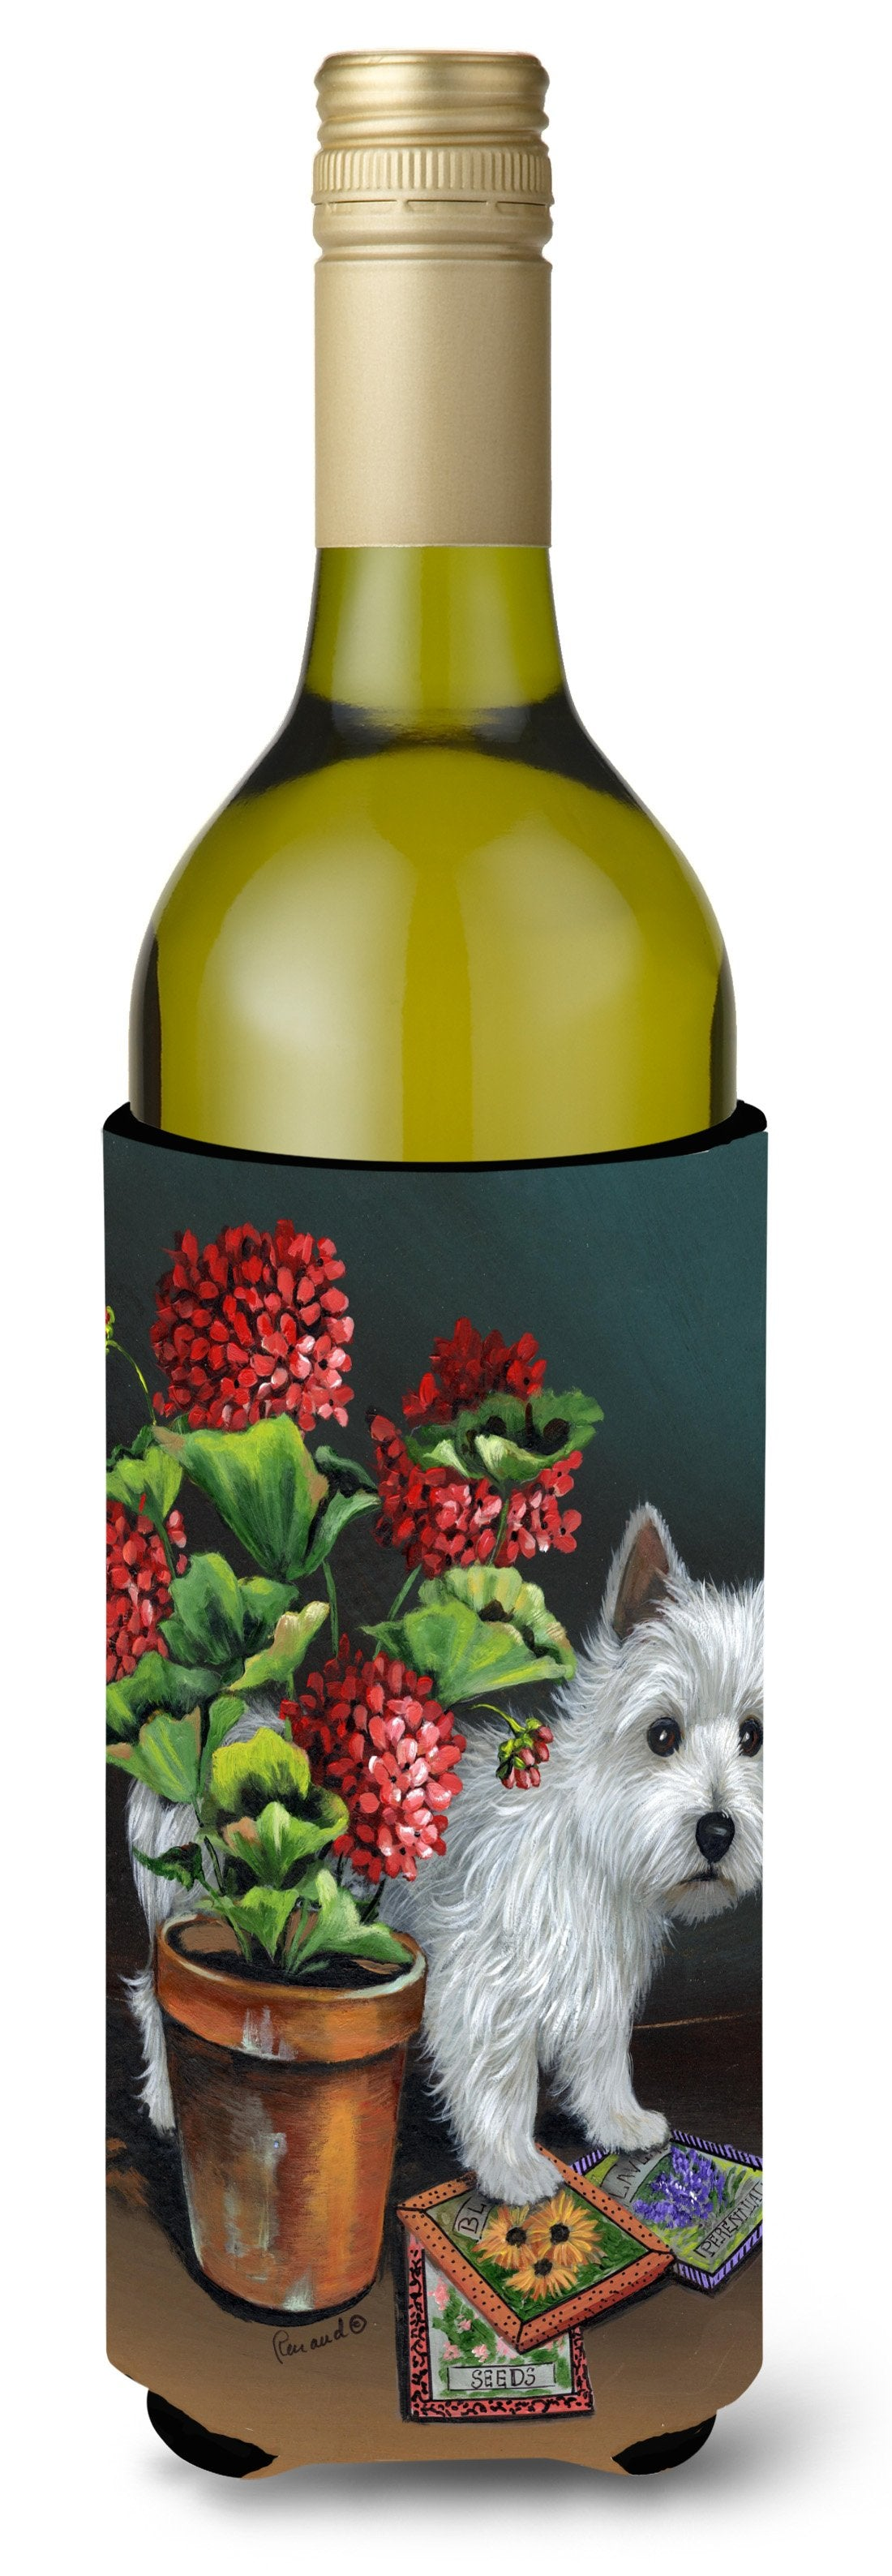 Westie Seedlings Wine Bottle Hugger PPP3231LITERK by Caroline's Treasures